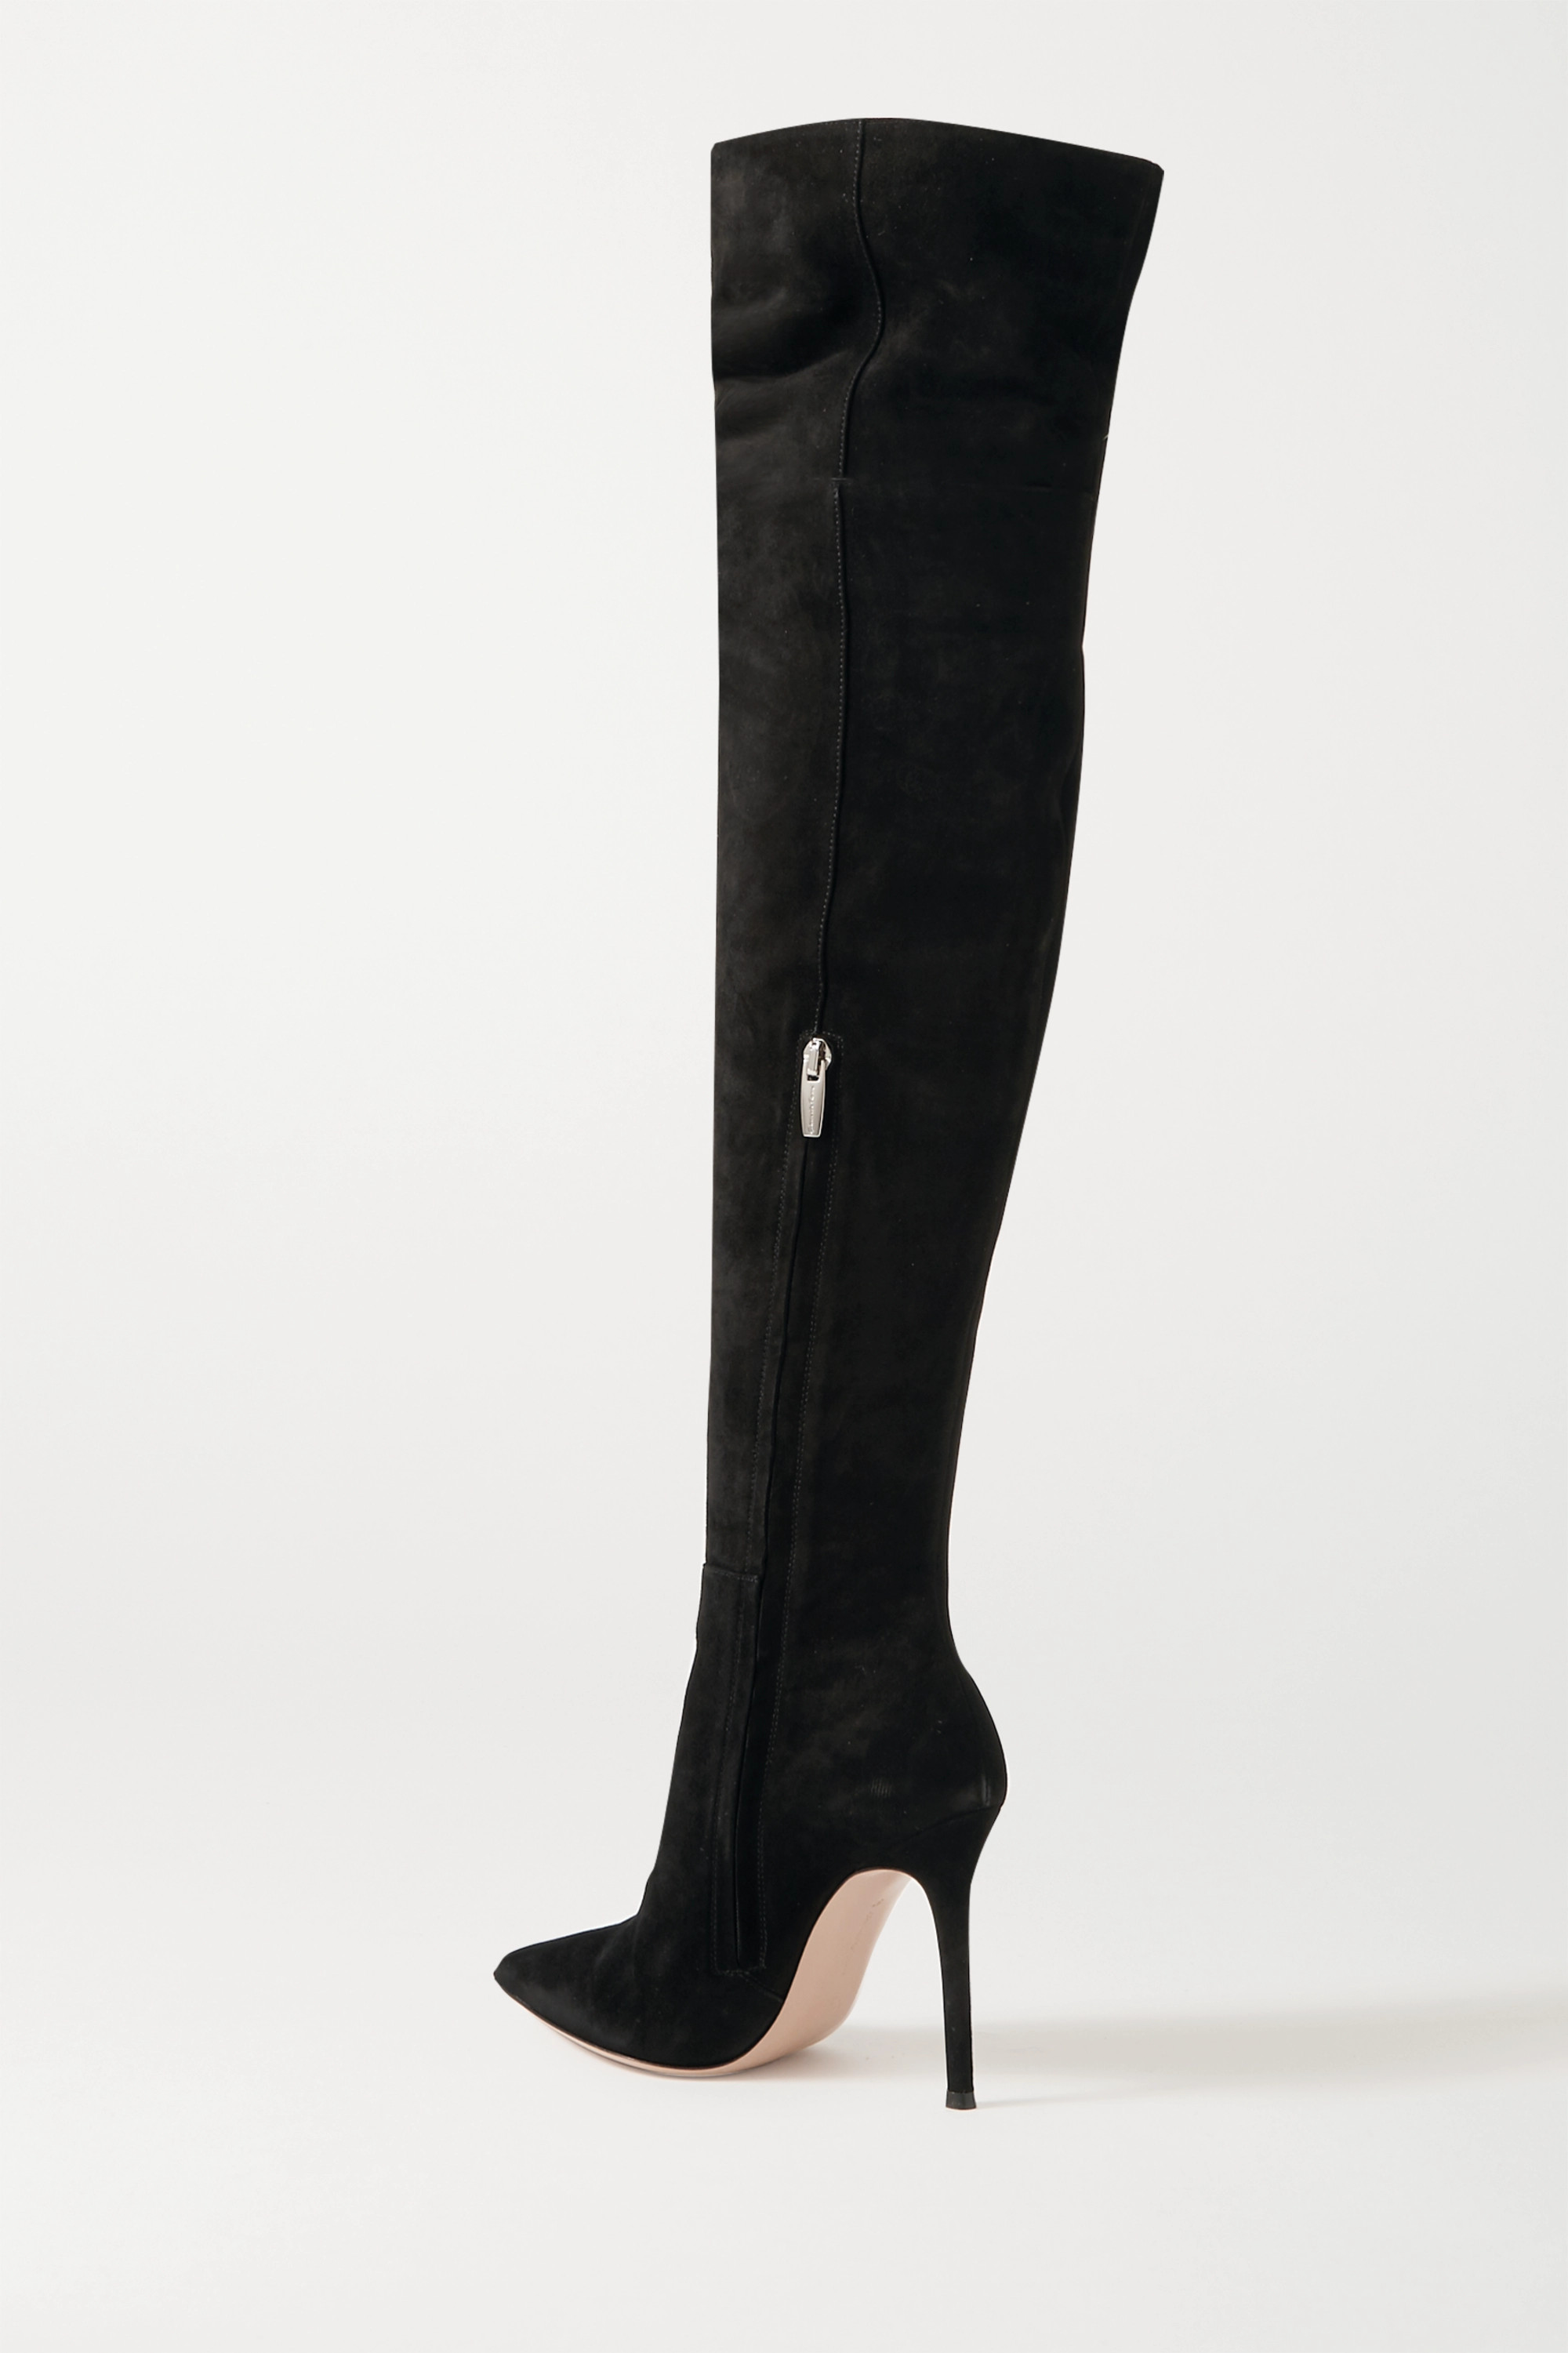 Black 105 Suede Over-the-knee Boots | Gianvito Rossi